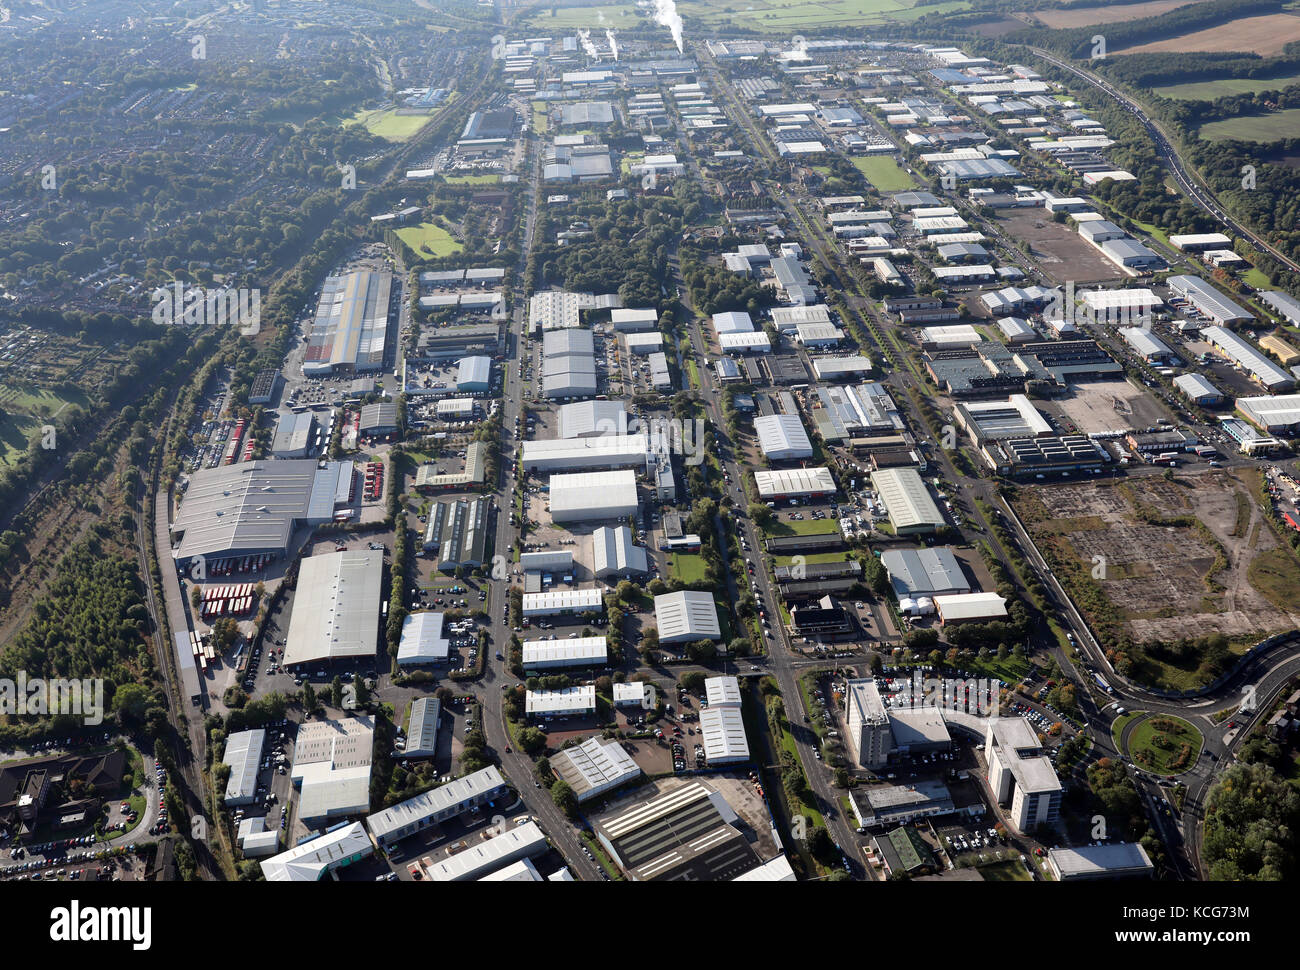 aerial view of Team Valley Trading Estate, Gateshead, UK - Stock Image